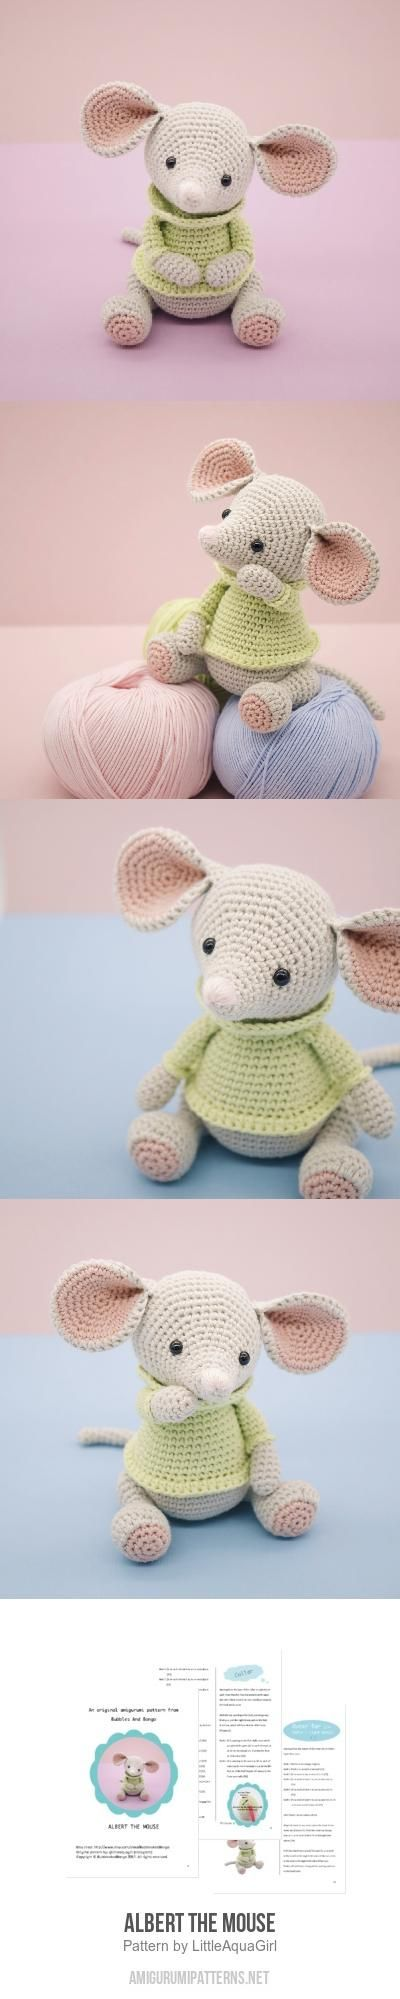 Albert the Mouse amigurumi pattern